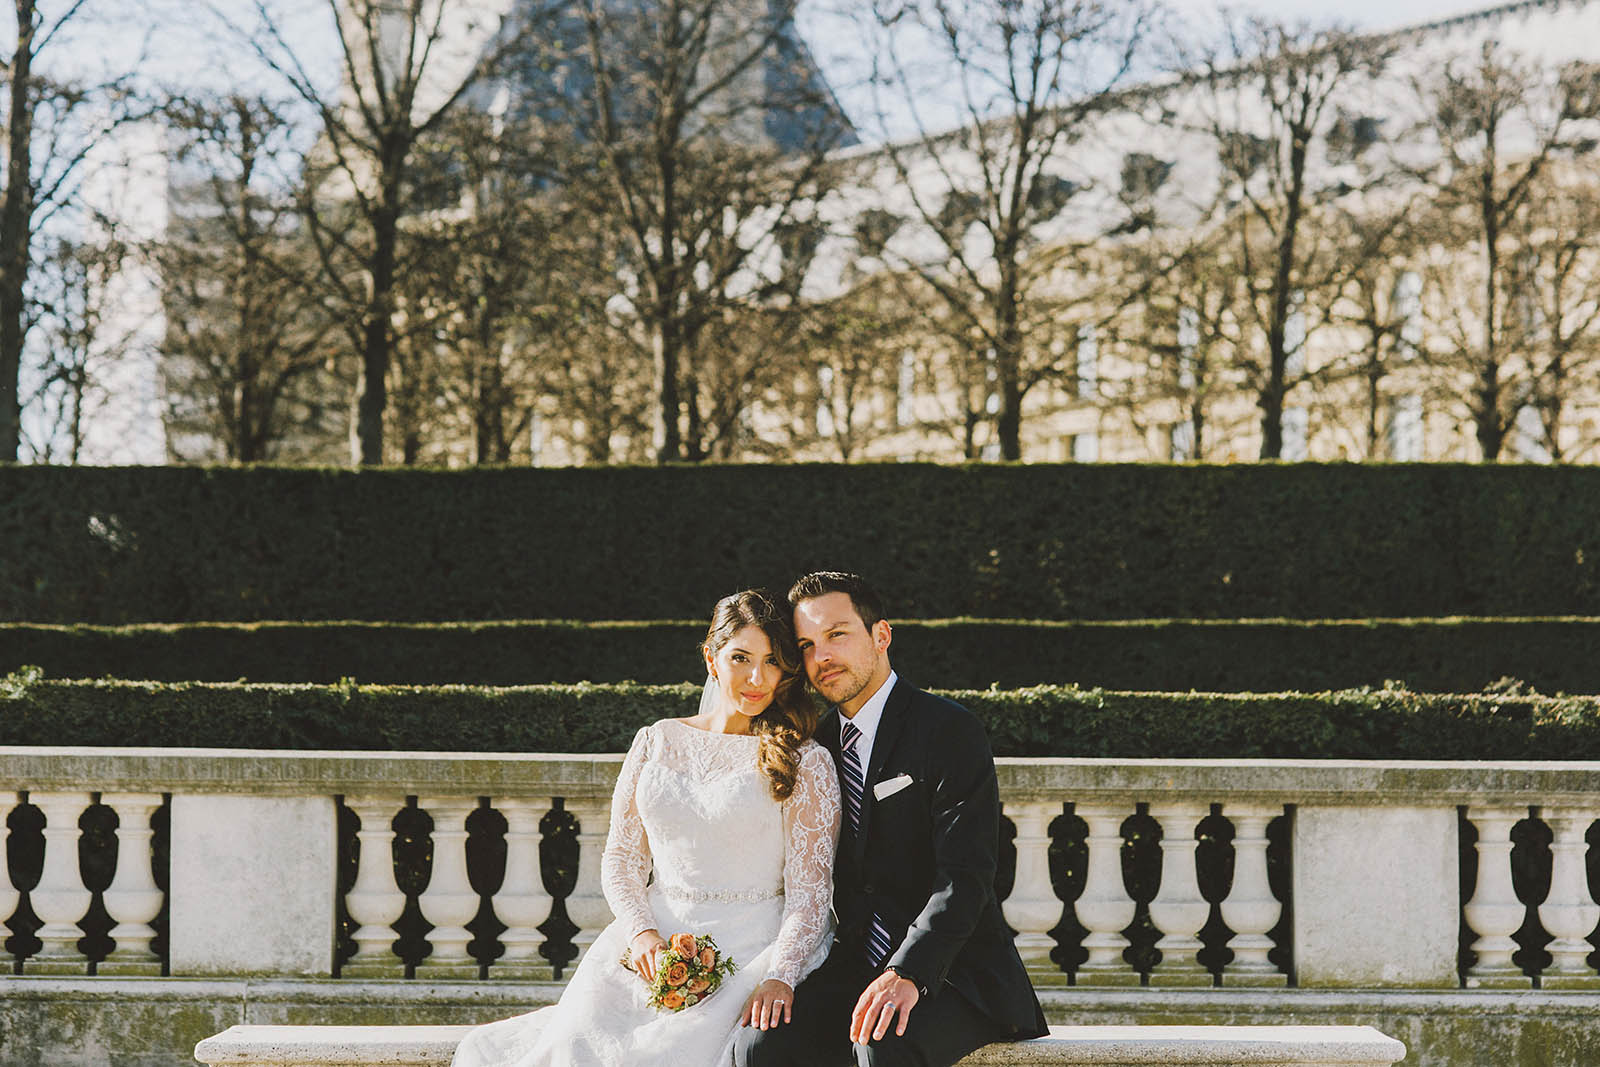 Portraits outside of the Louvre | Springtime Paris Elopement at Parc des Buttes Chaumont